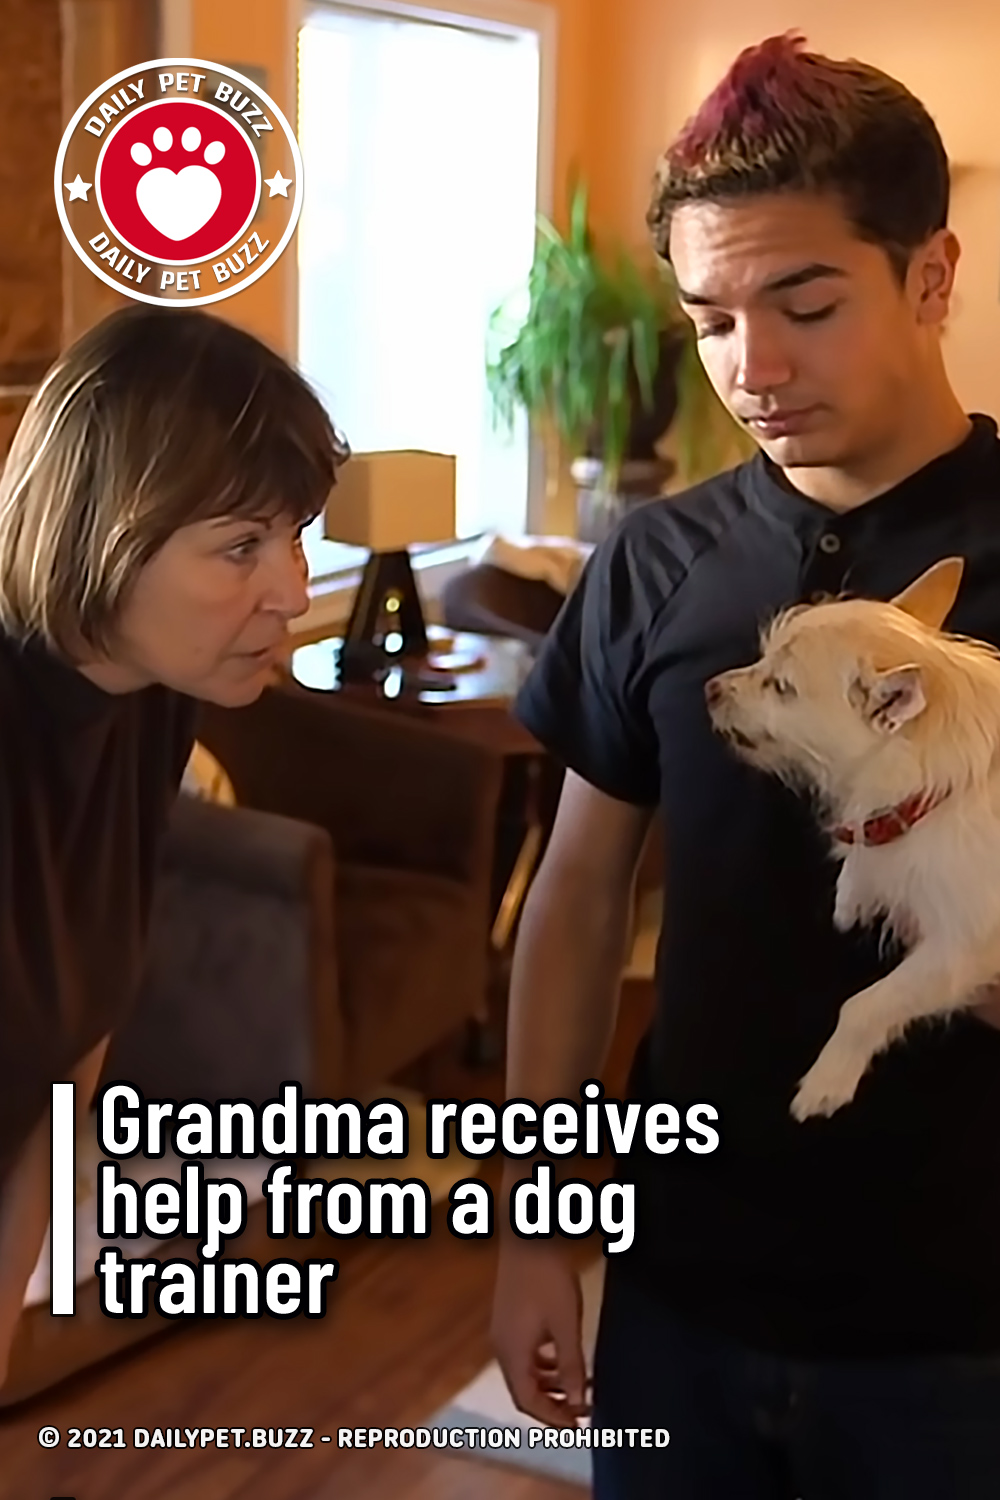 Grandma receives help from a dog trainer